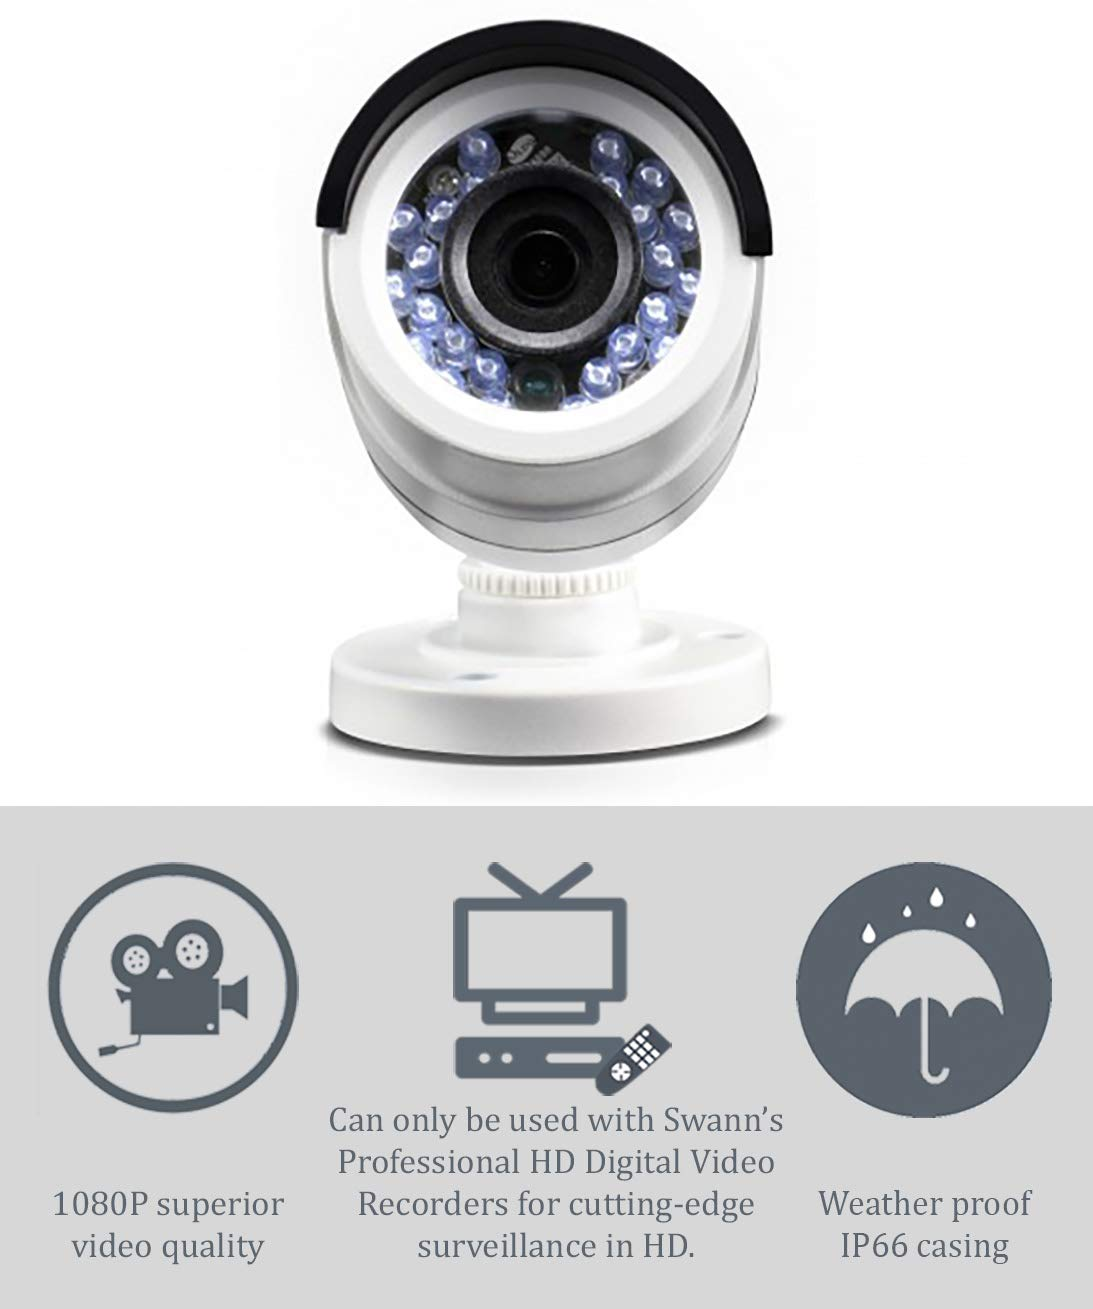 17b30caf48354 Amazon.com   Swann PRO-T852 1080p Multi-Purpose Day Night Security Camera  with Night Vision up to 100 ft   3m - 4-Pack   Camera   Photo